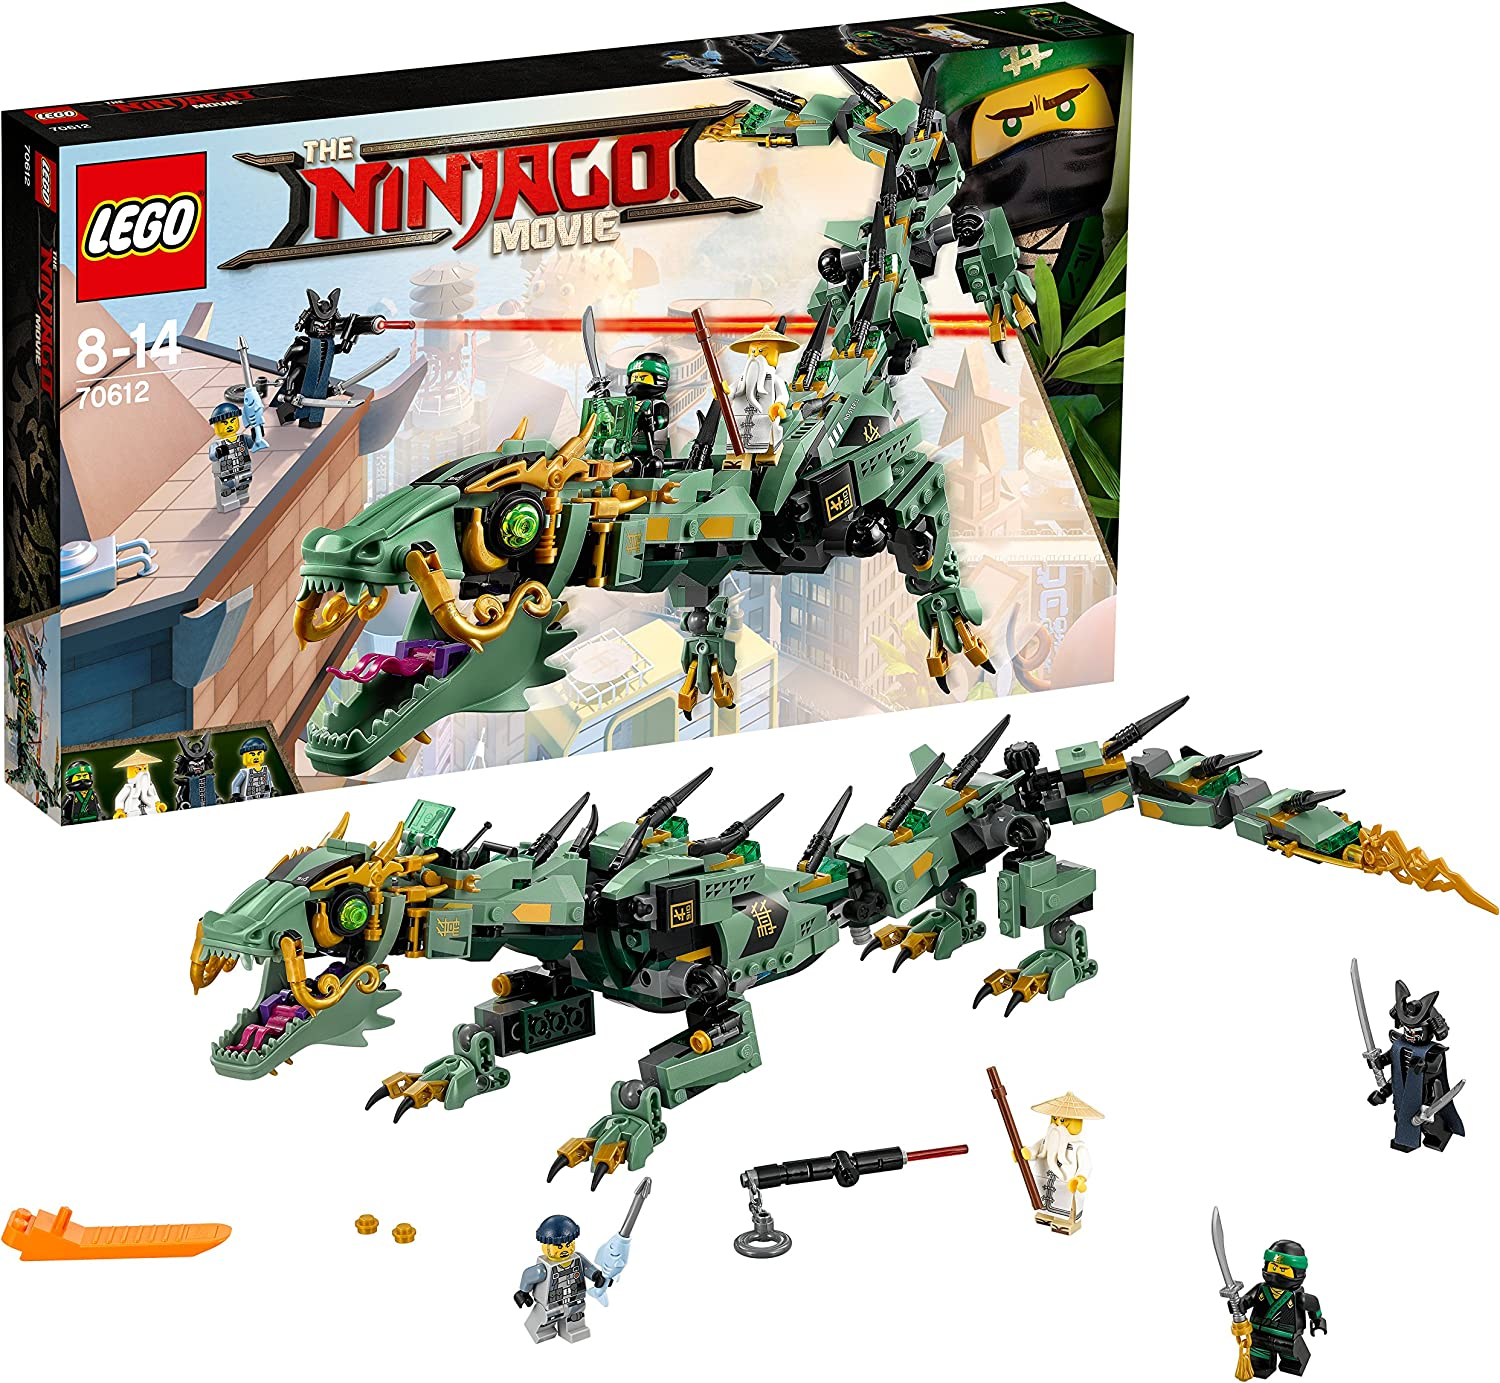 LEGO Ninjago Green Ninja Mech Dragon 70612 Building Kit (544 Piece)